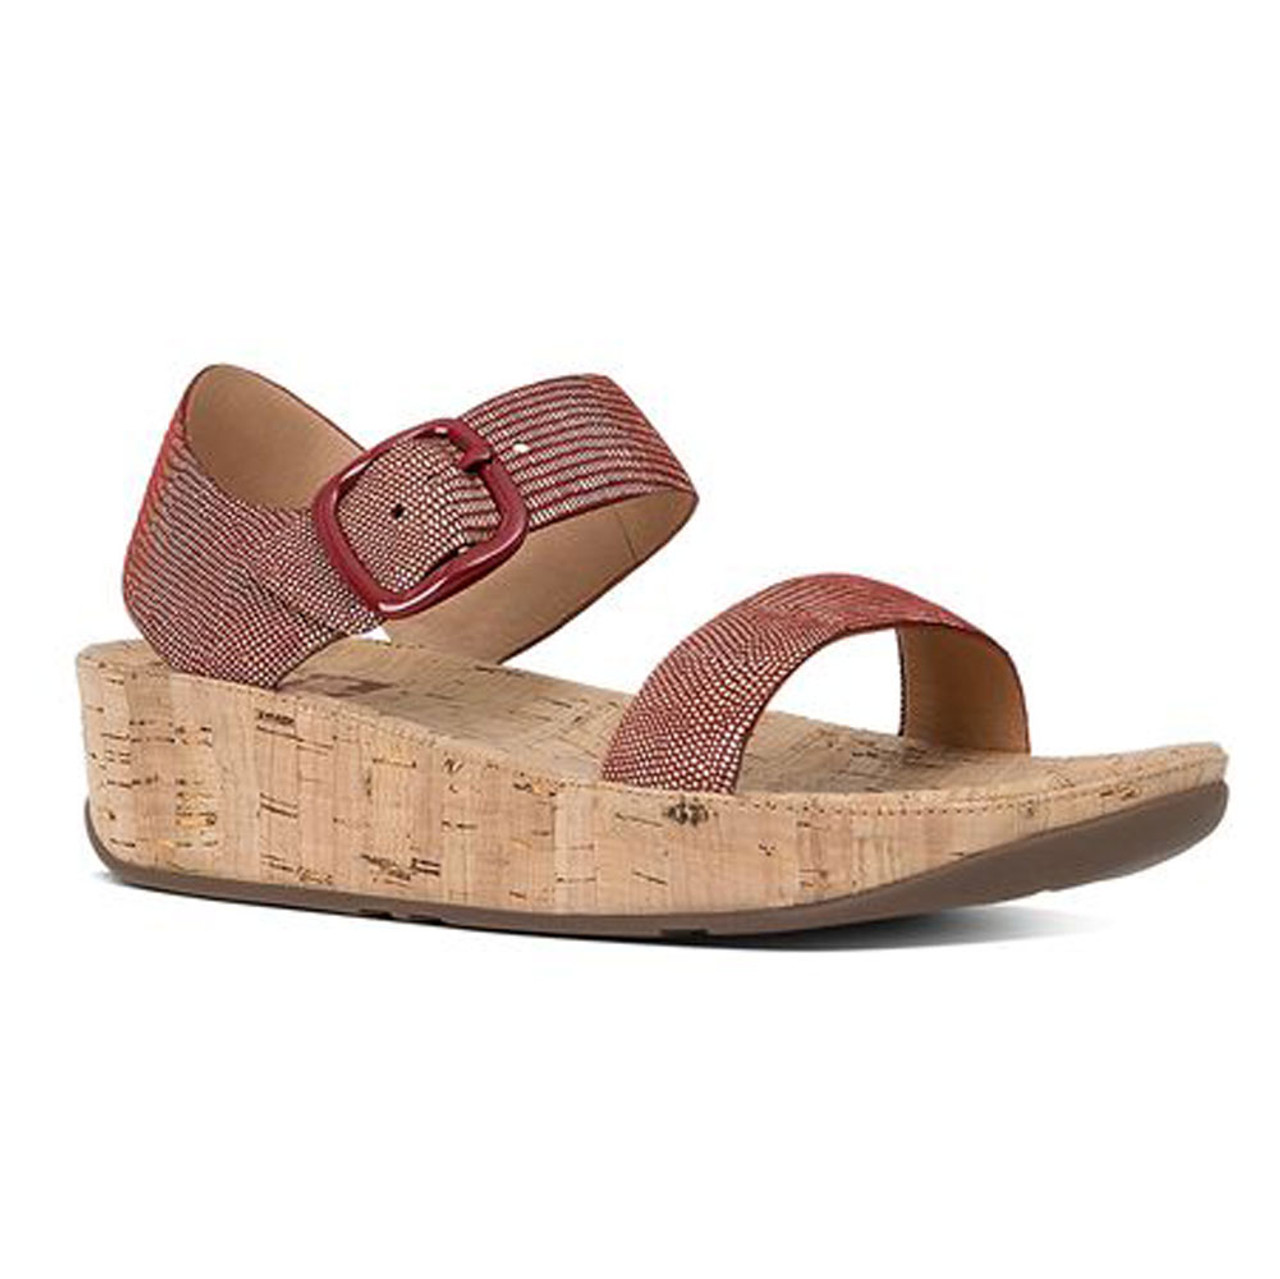 61bd84bc544b83 Fitflop Women s Bon Lizard Print Sandal Spice - Shop now   Shoolu.com